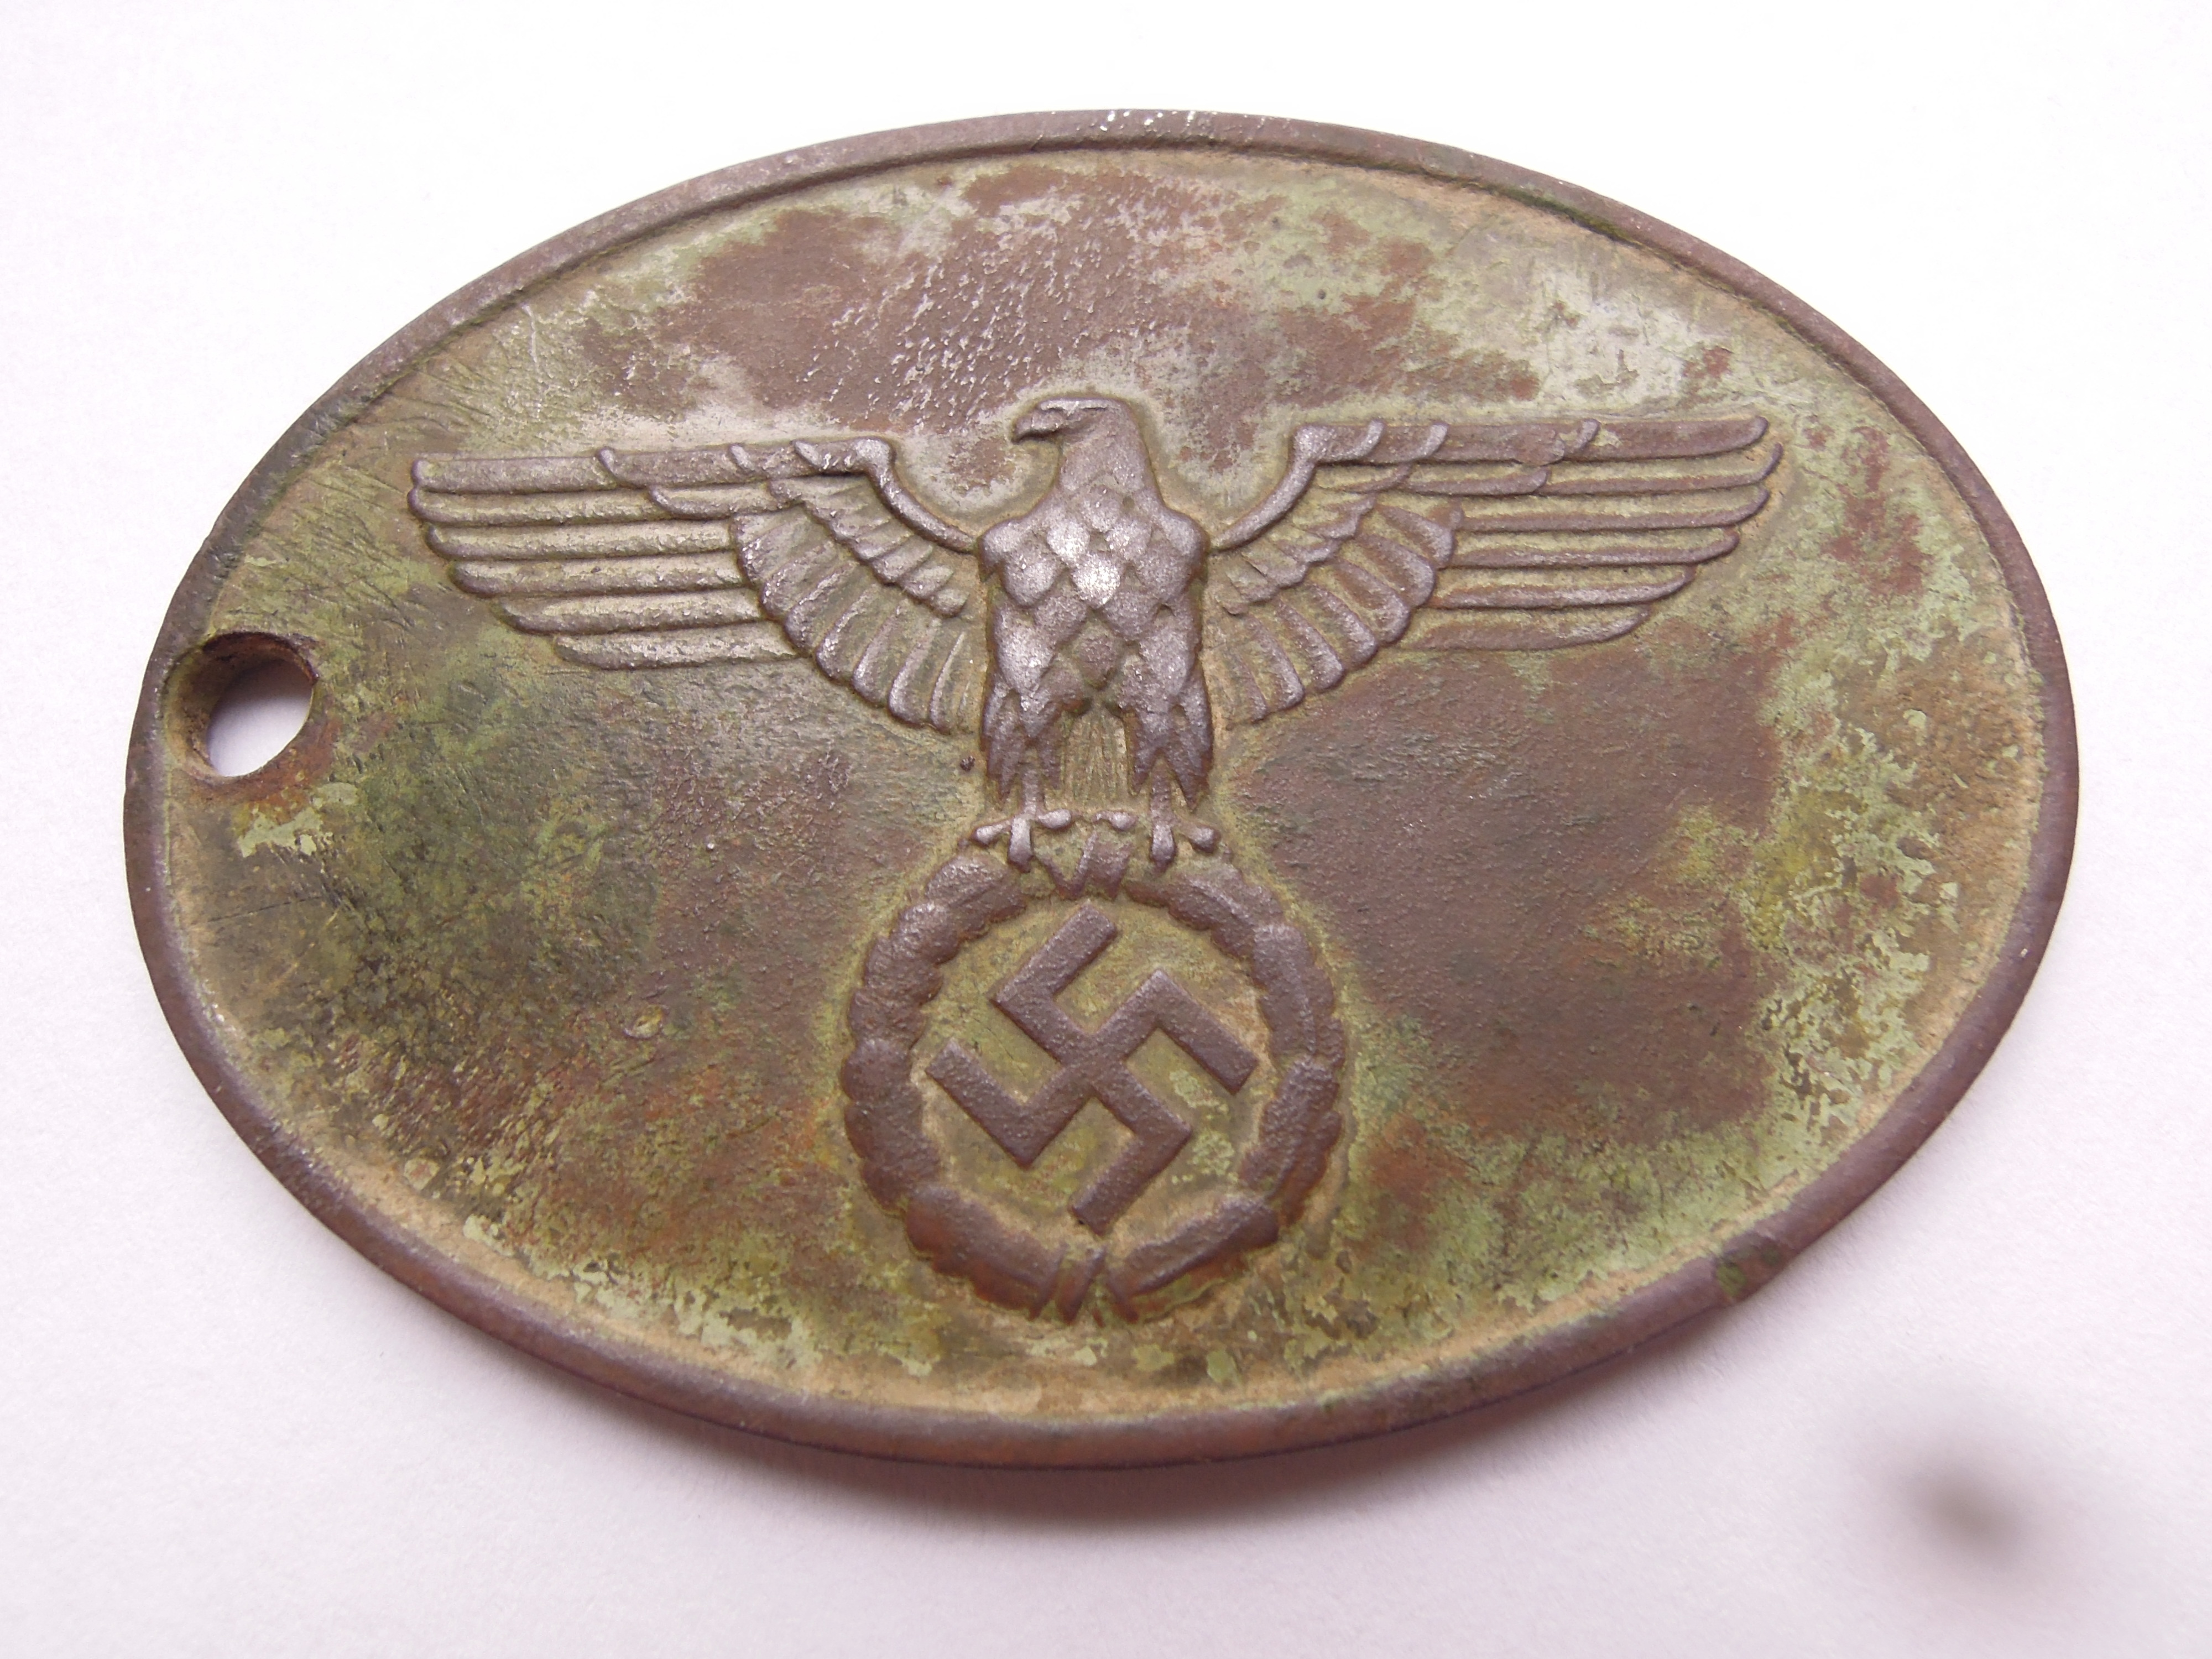 GROUND DUG GESTAPO WARRANT DISC no. 9104